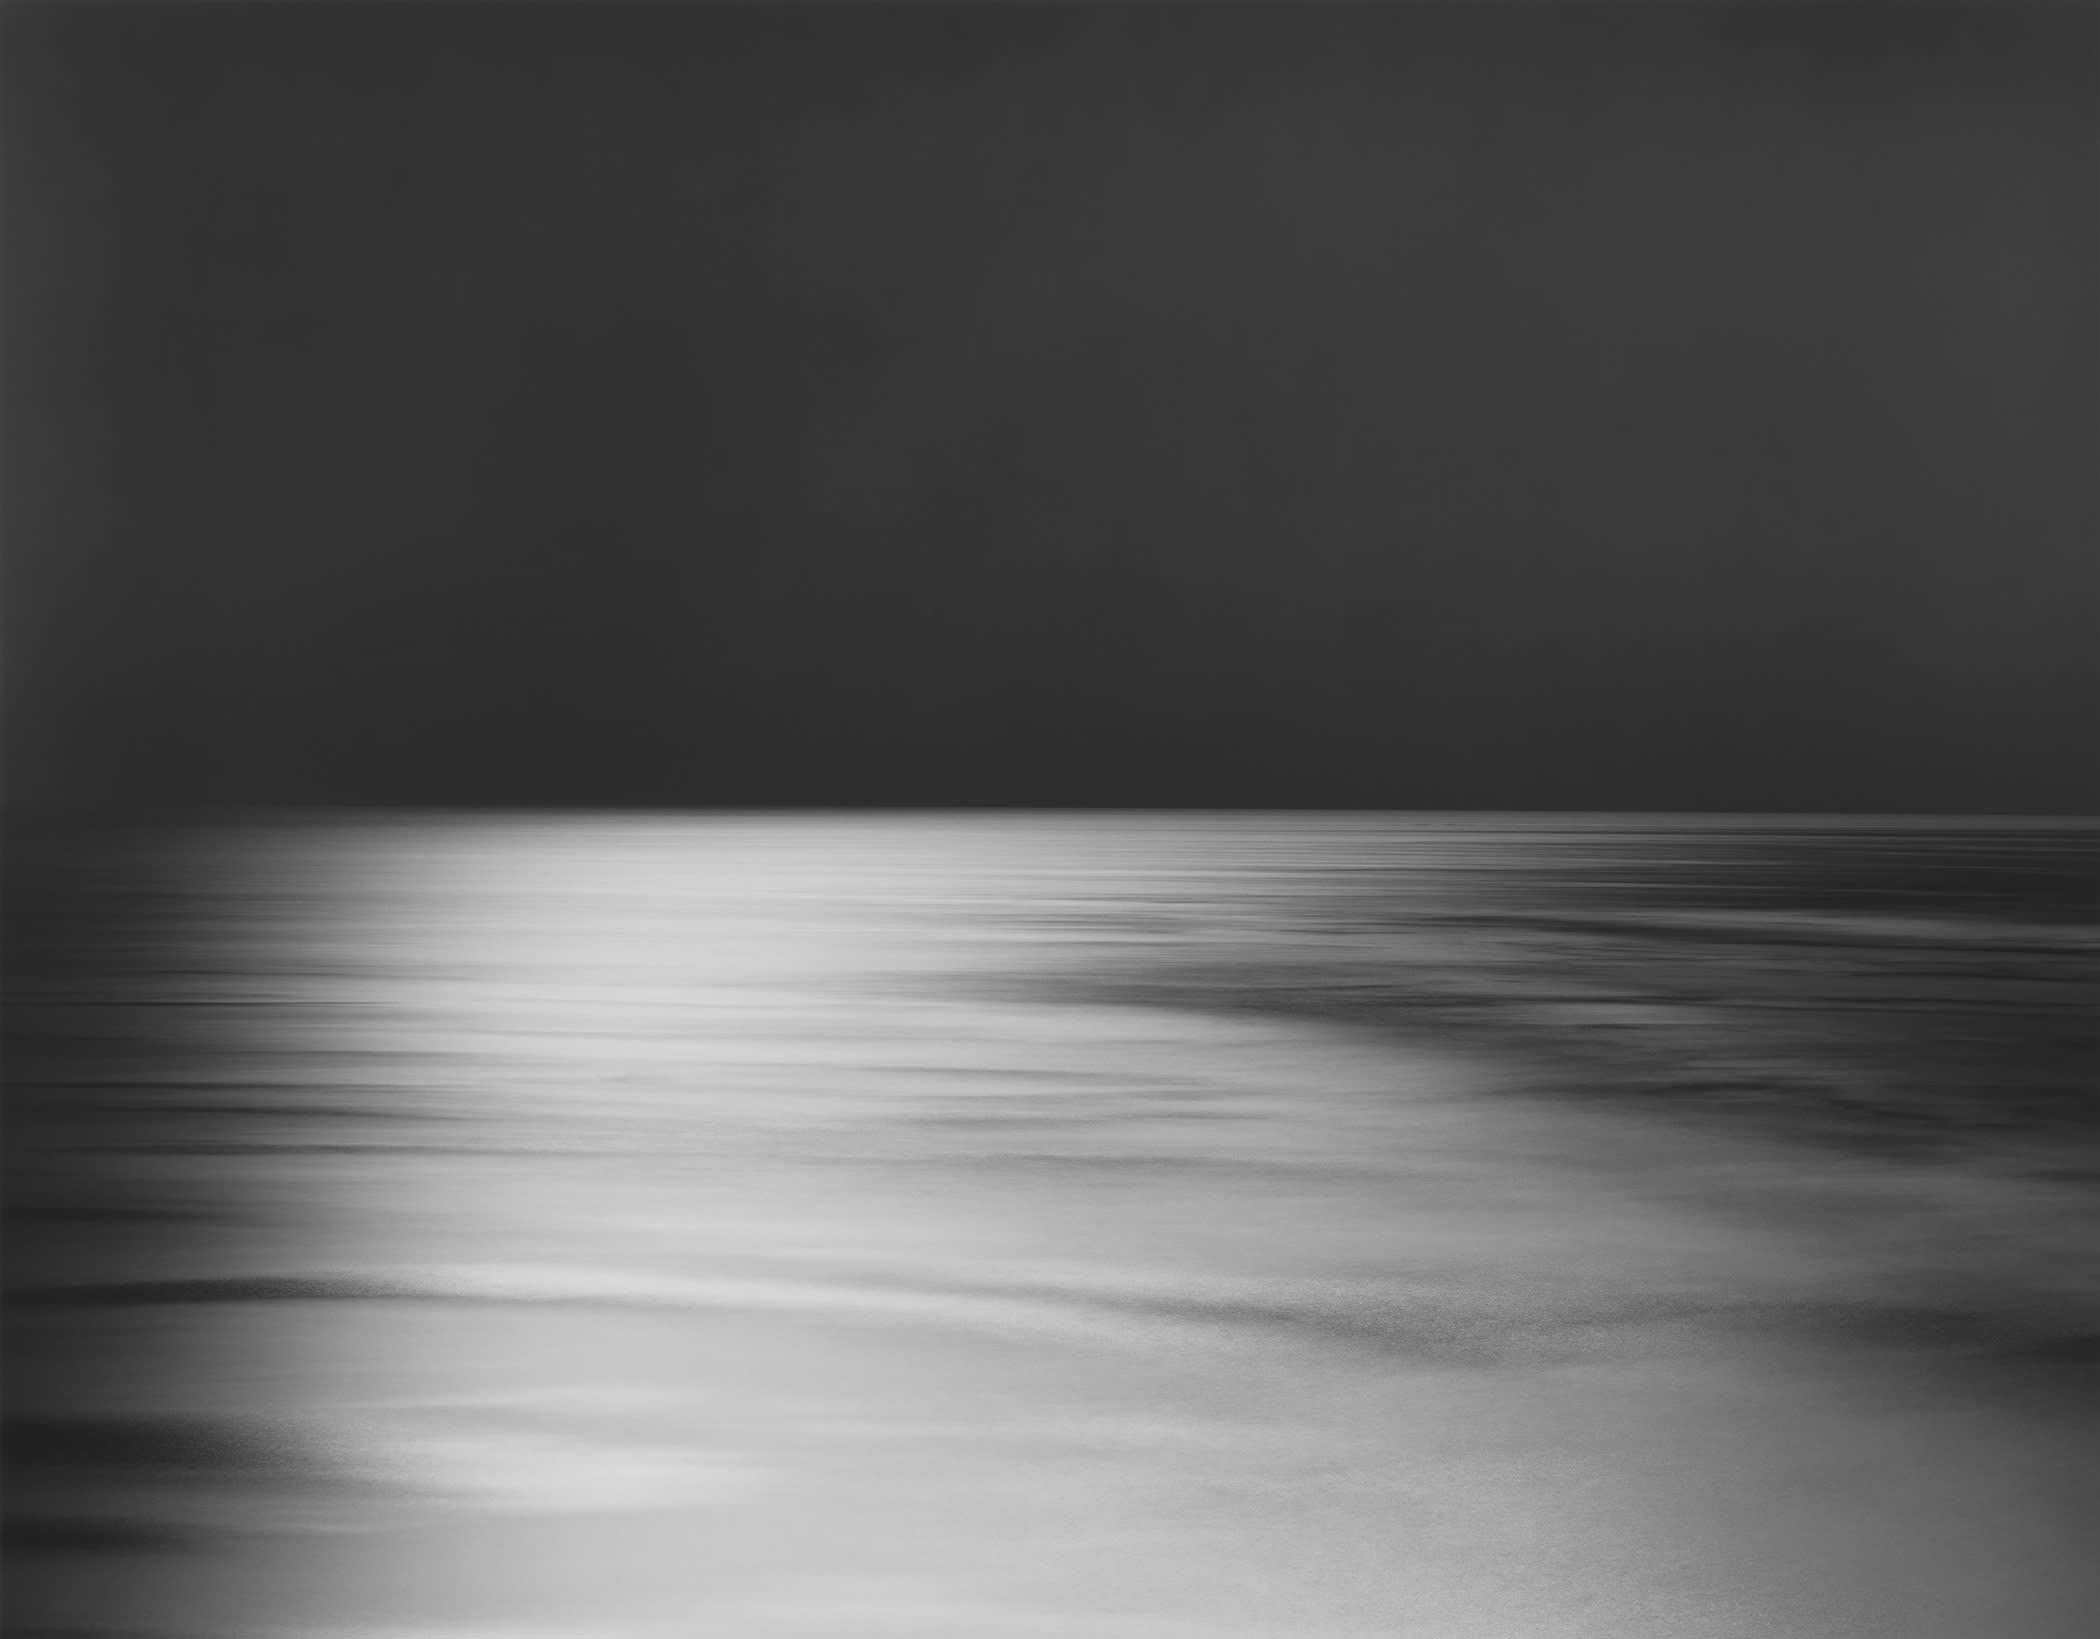 A Hiroshi Sugimoto photograph: A grayscale image of a horizon line with a dark sky and lighter ground.